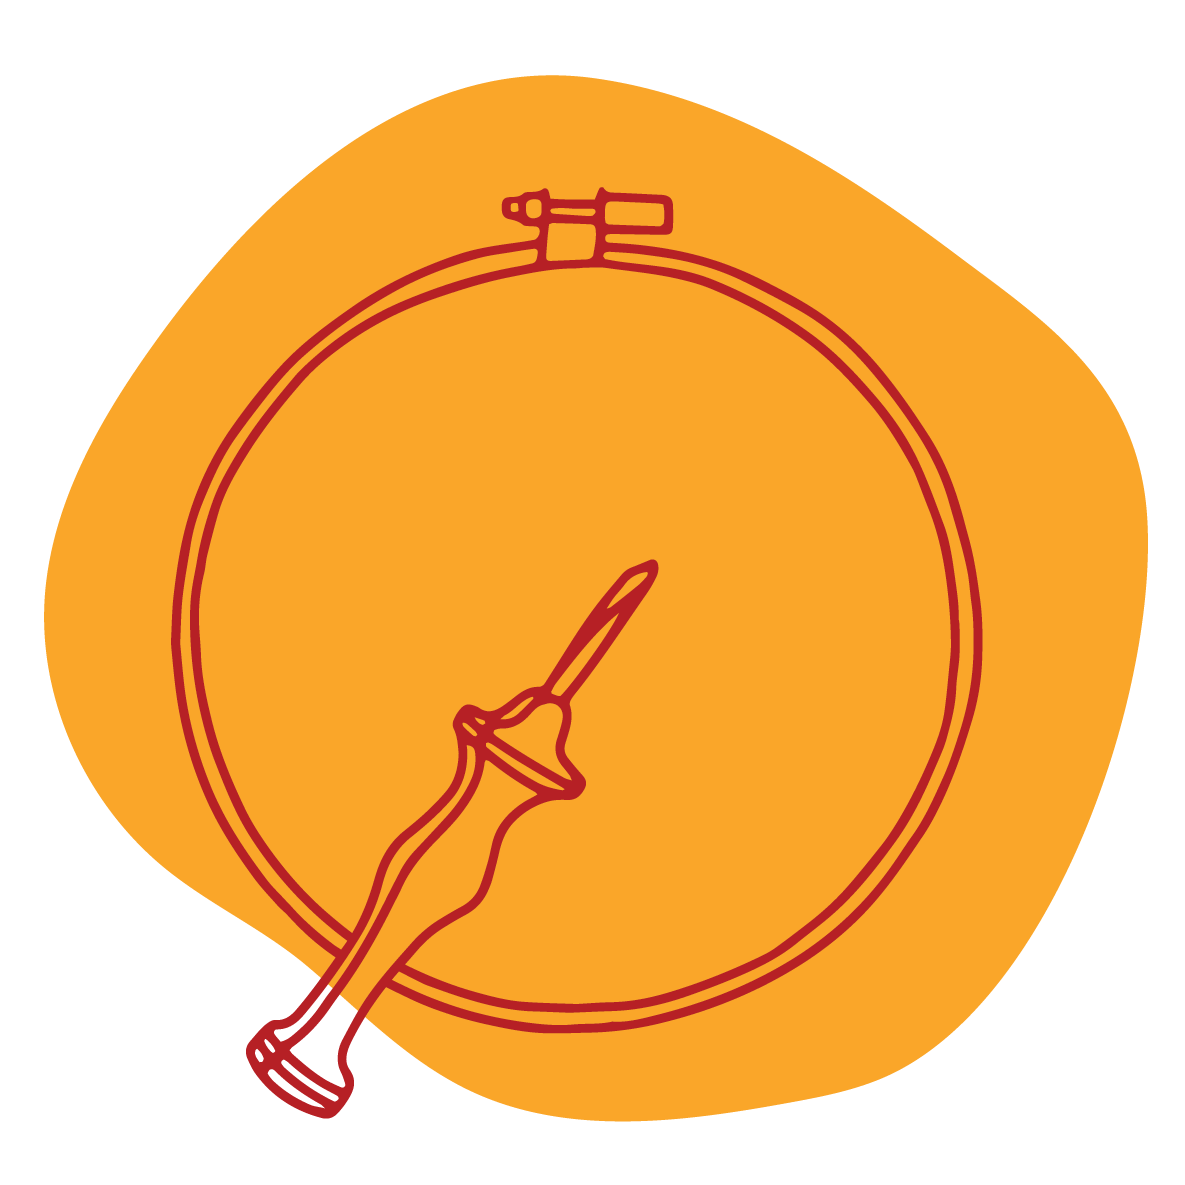 MM_Icon_PunchNeedle.png